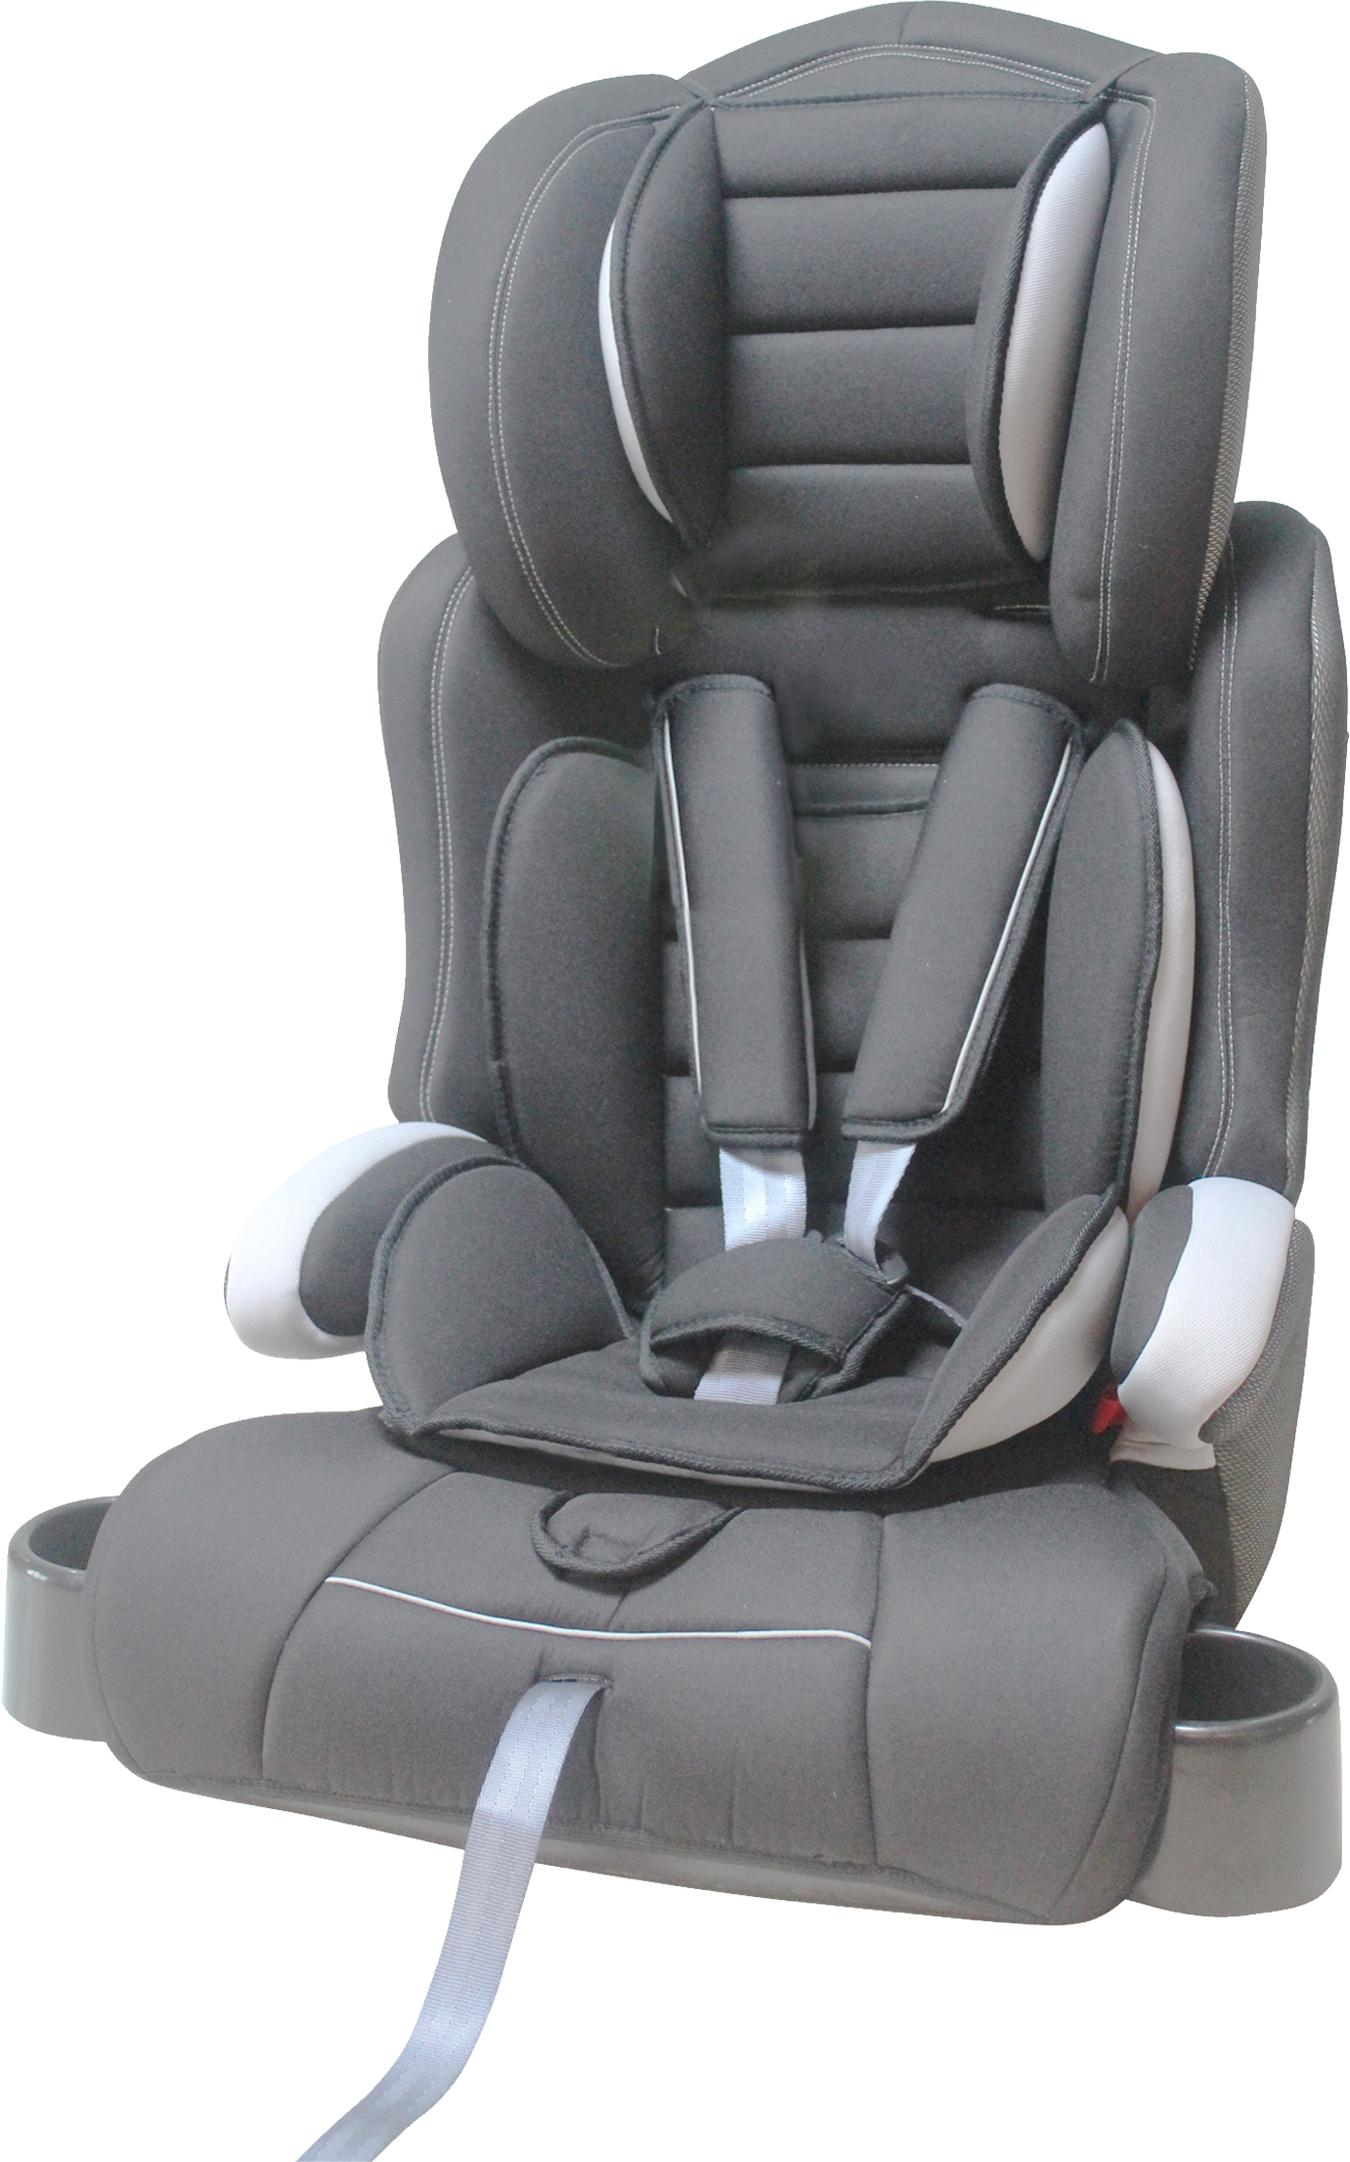 cozy n safe group 1 2 3 child car seat with cupholders grey black. Black Bedroom Furniture Sets. Home Design Ideas